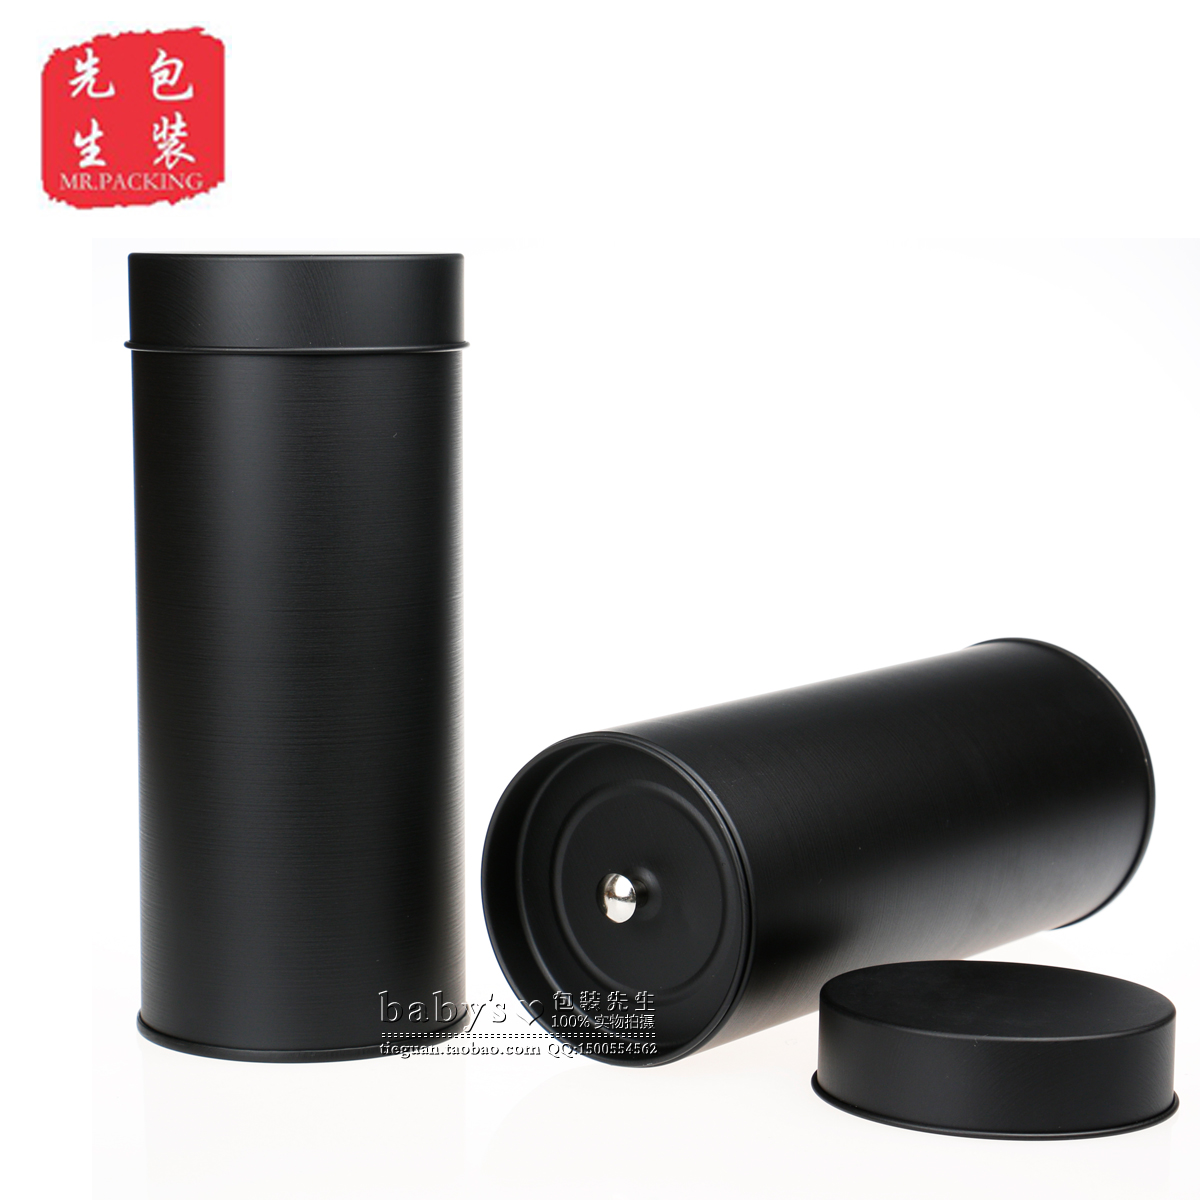 Size: dia.74x175 H mm/round tea tin box/tea can/tea container/black tea can/food tin can with inner lid